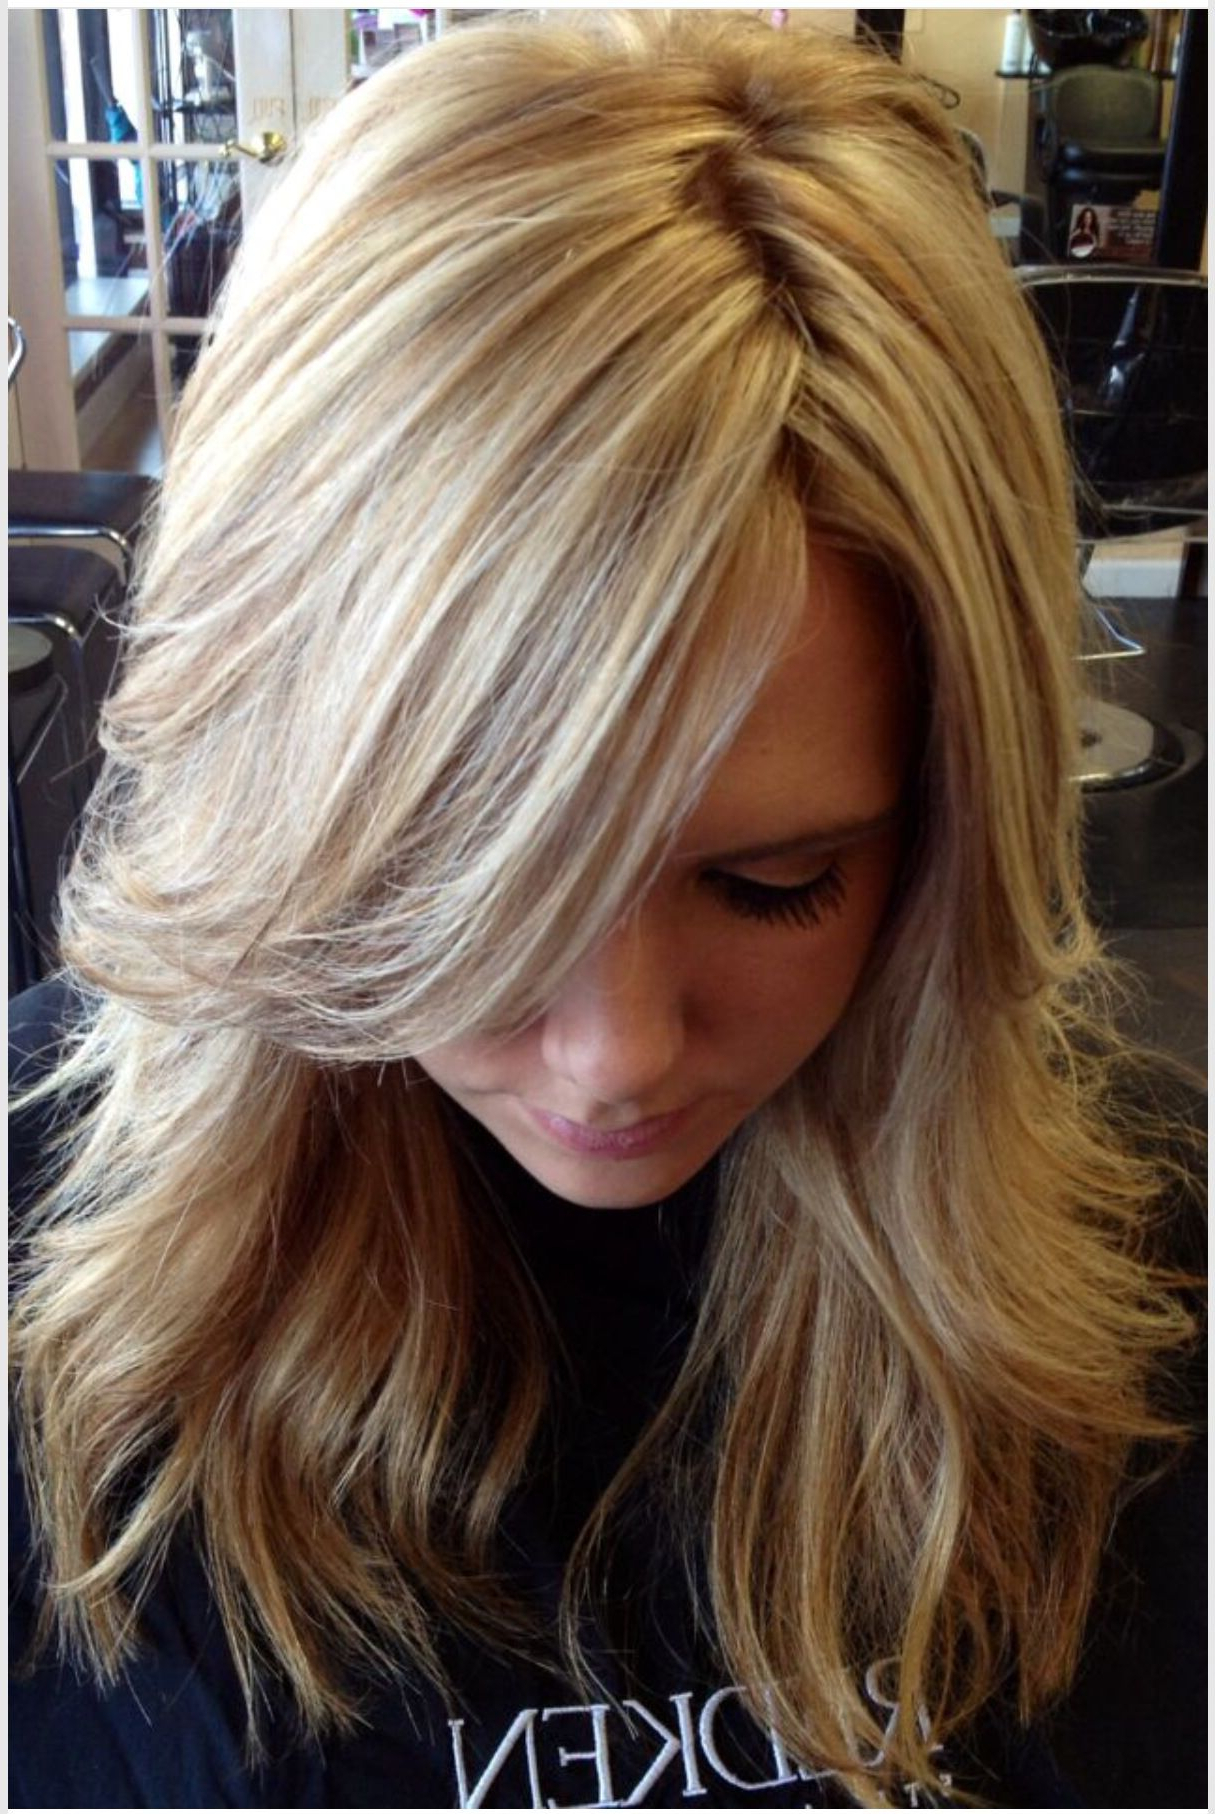 Current Feathered Bangs Hairstyles With Bright Highlights For A Ton Of Highlights, With Paper Thin Lowlights That Blend So (View 5 of 20)